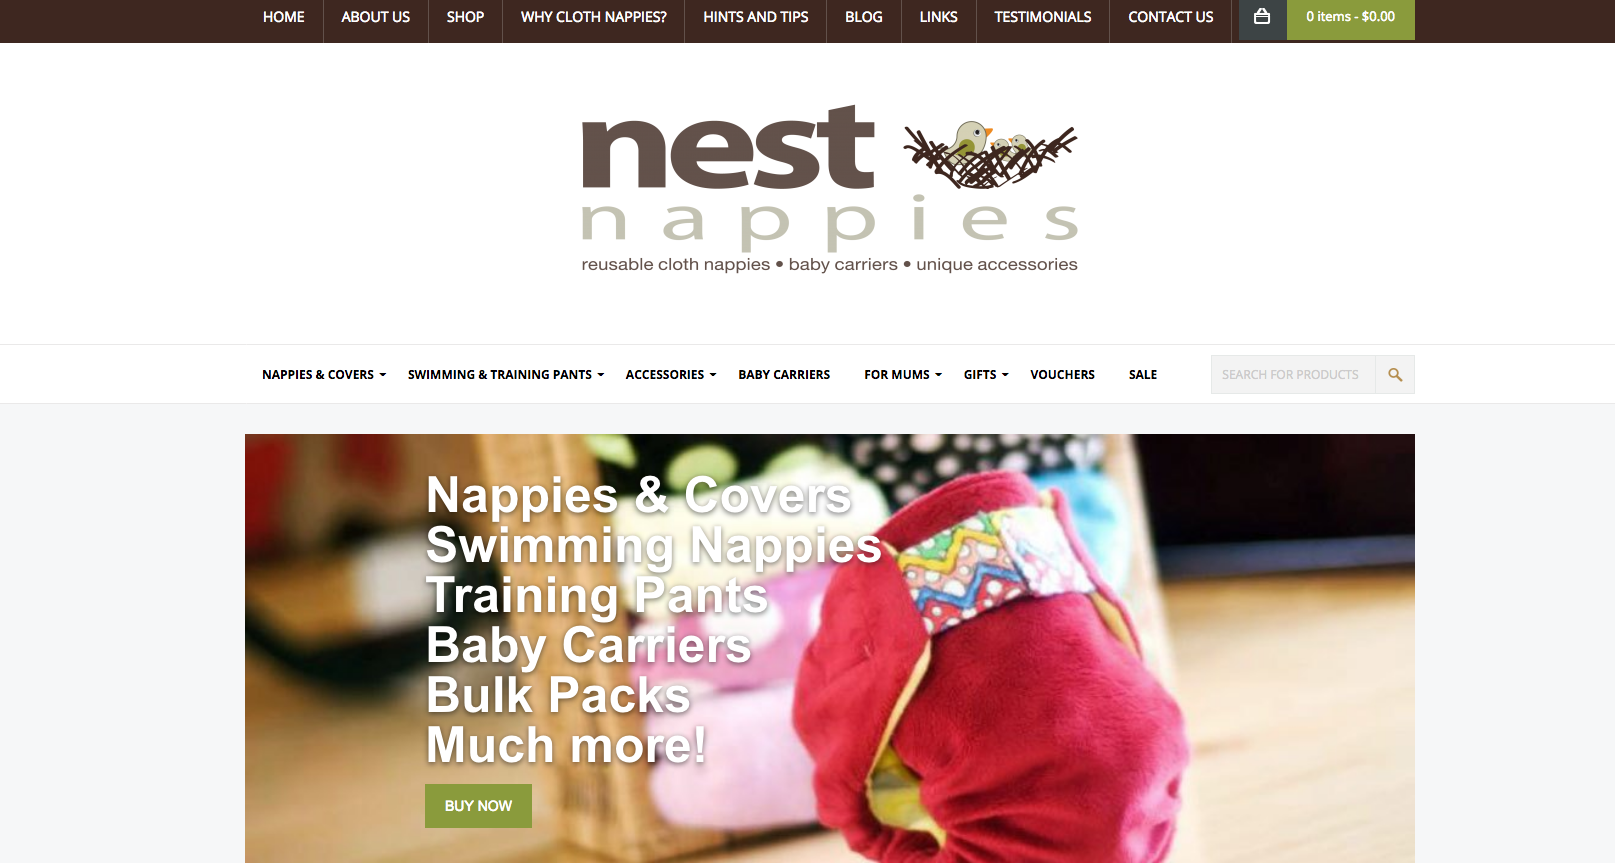 nest nappies new website